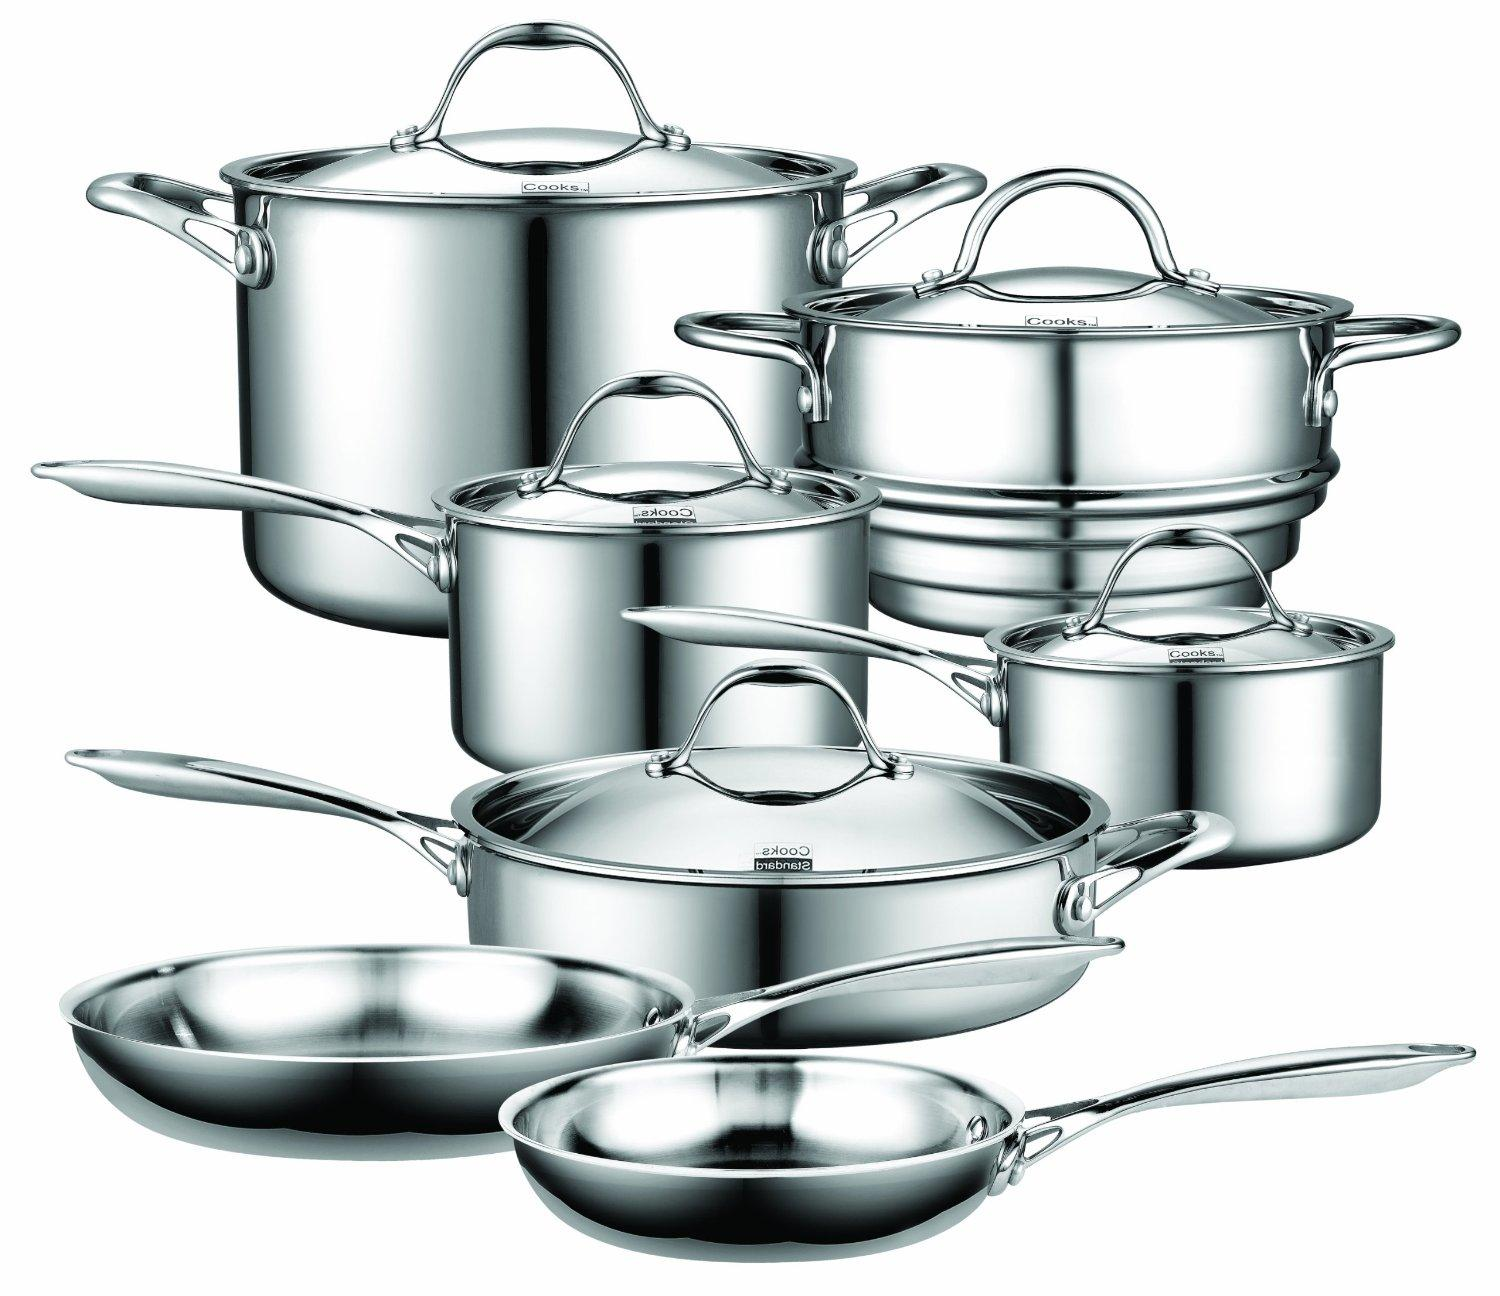 $179.99 Cooks Standard Multi-Ply Clad Stainless-Steel 12-Piece Cookware Set